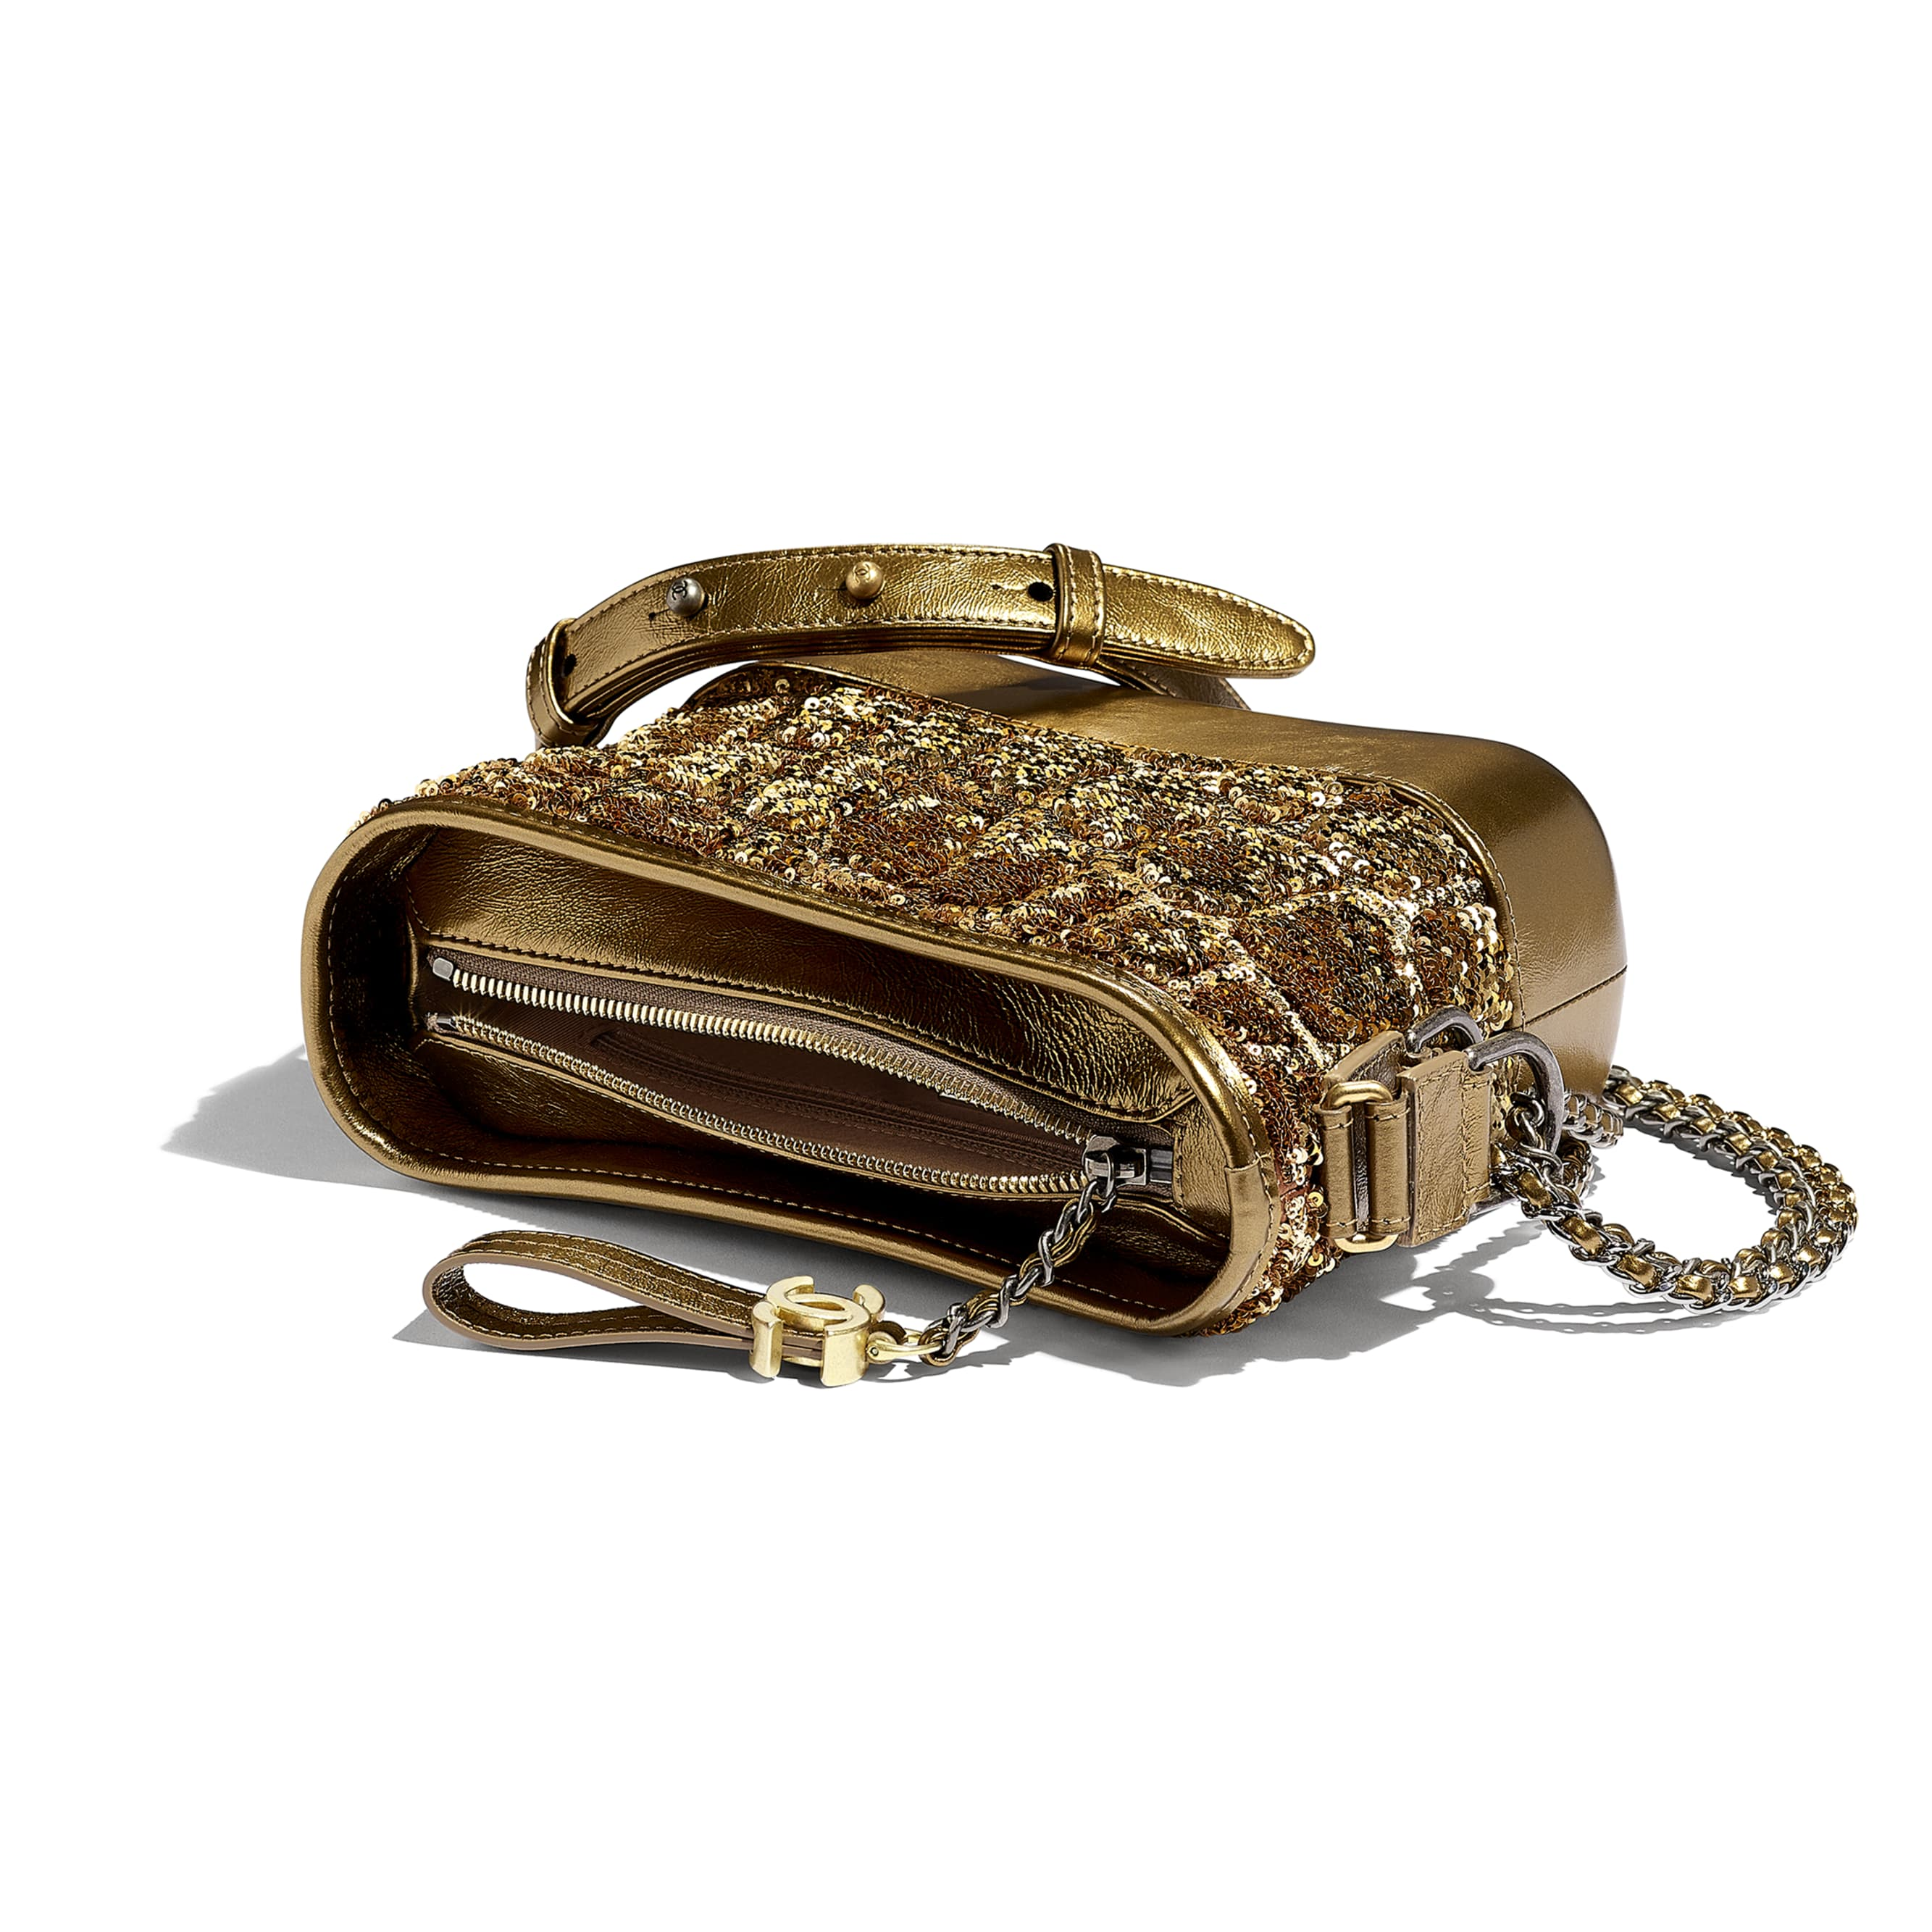 CHANEL'S GABRIELLE Small Hobo Bag - Gold & Copper - Sequins, Calfksin, Silver-Tone & Gold-Tone Metal - Other view - see standard sized version